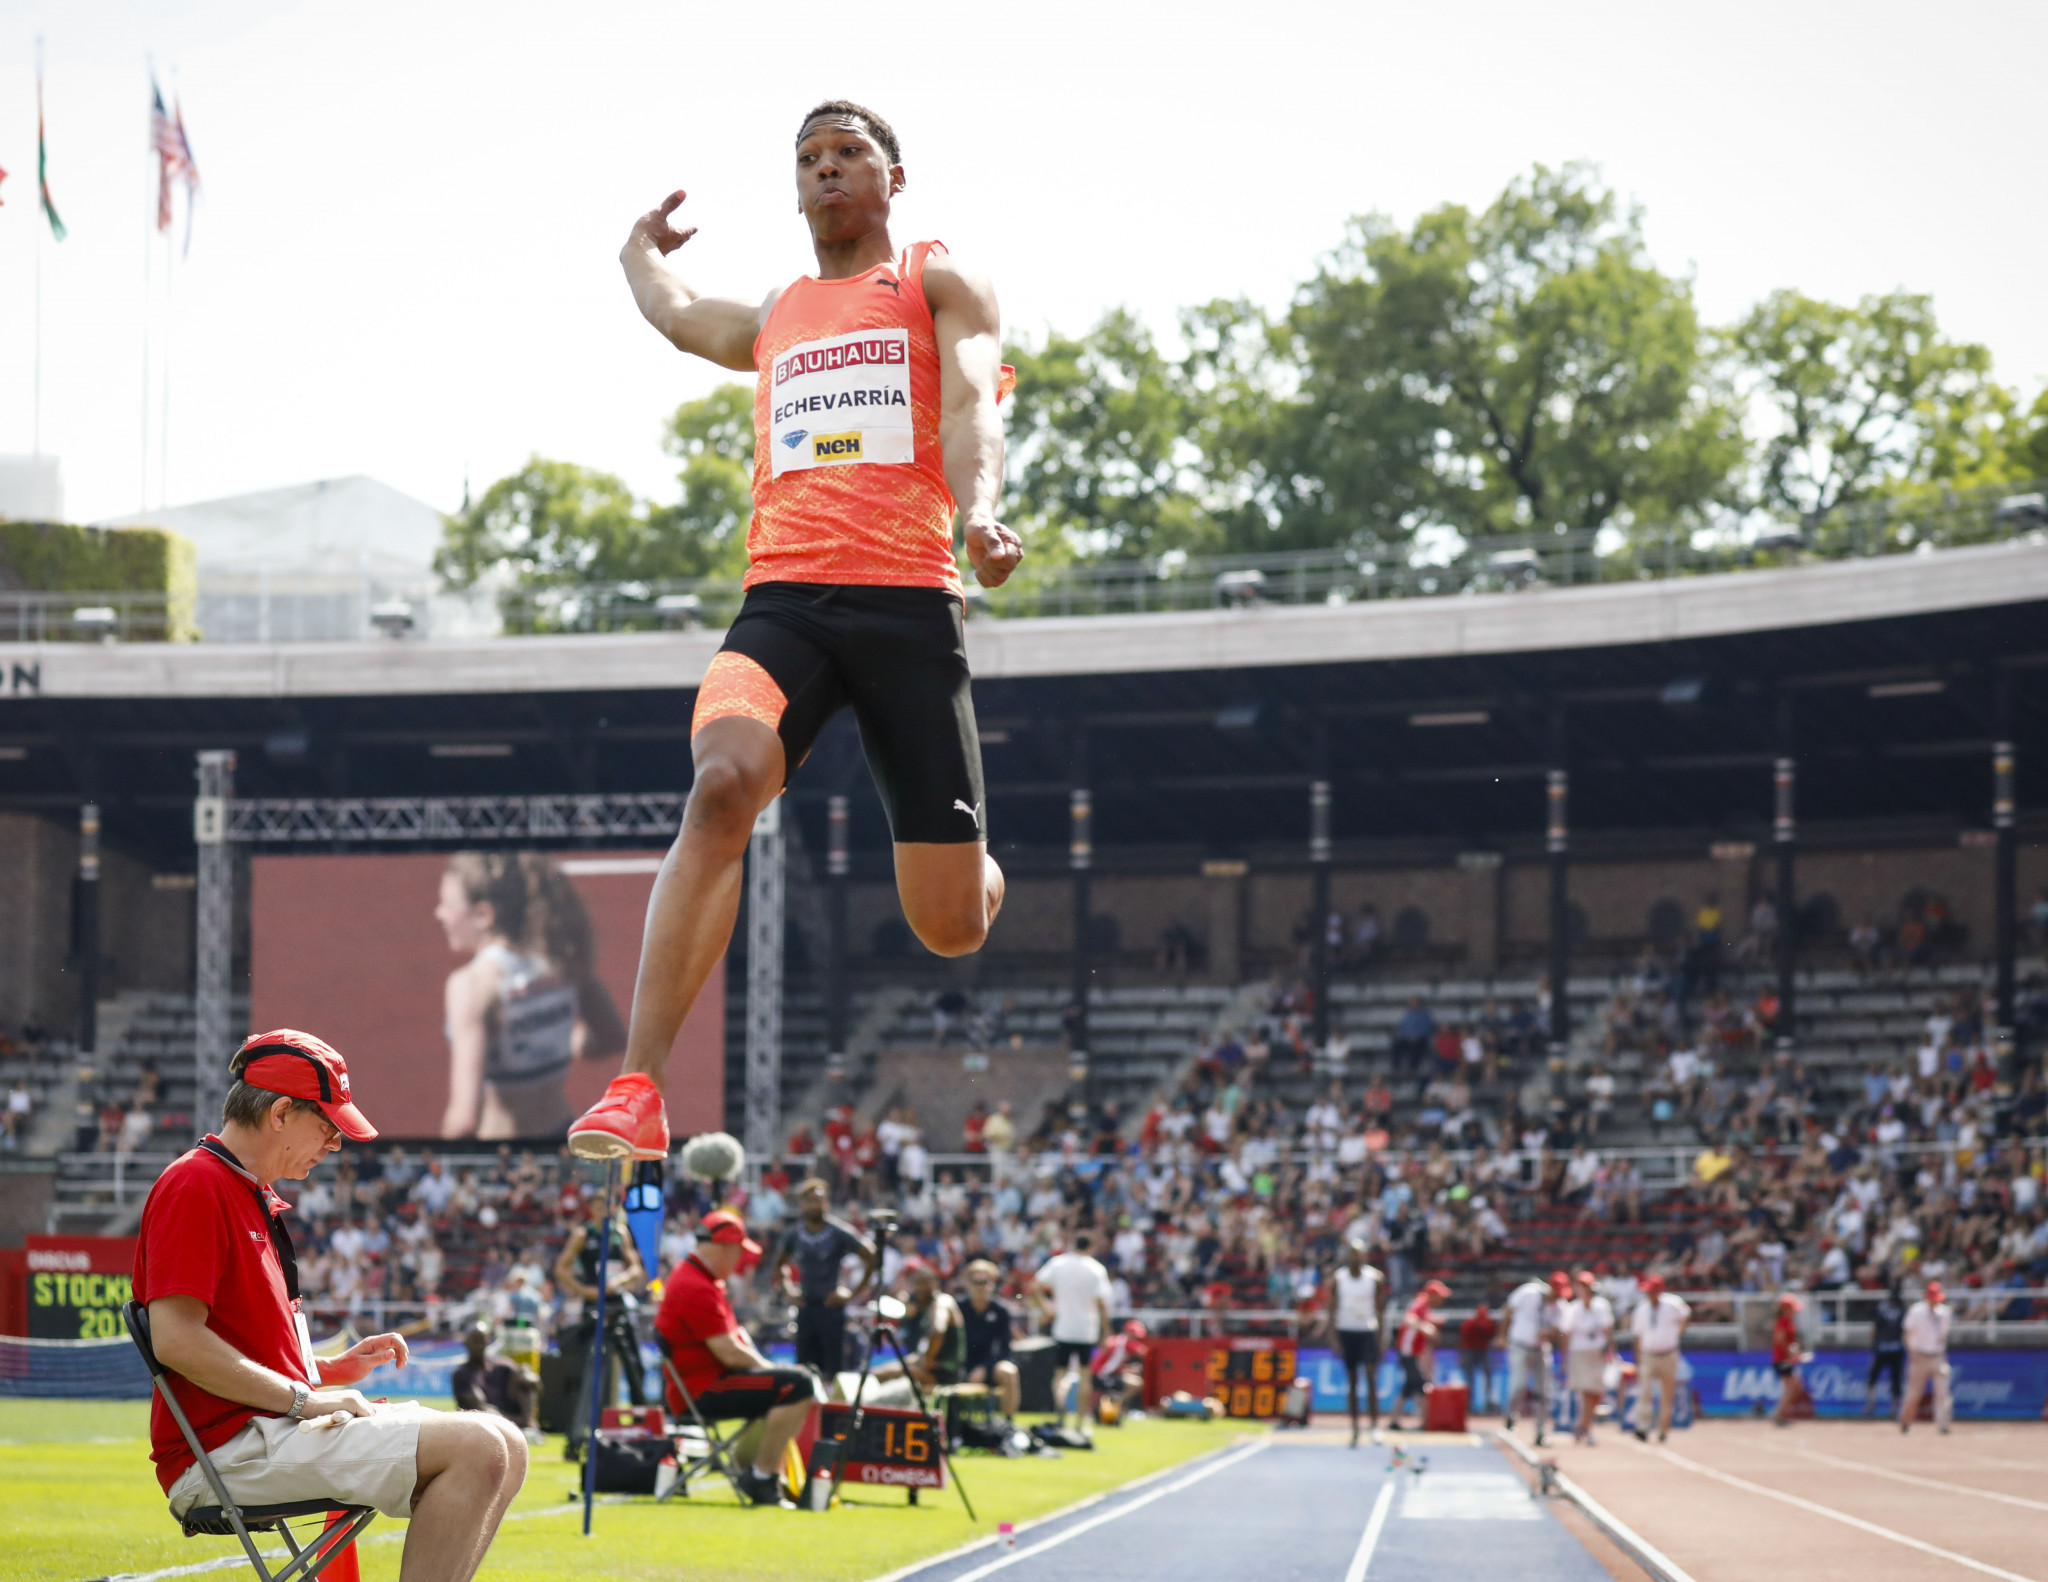 Cuba's Echevarria takes historic leap as young talents flourish at IAAF Diamond League in Stockholm